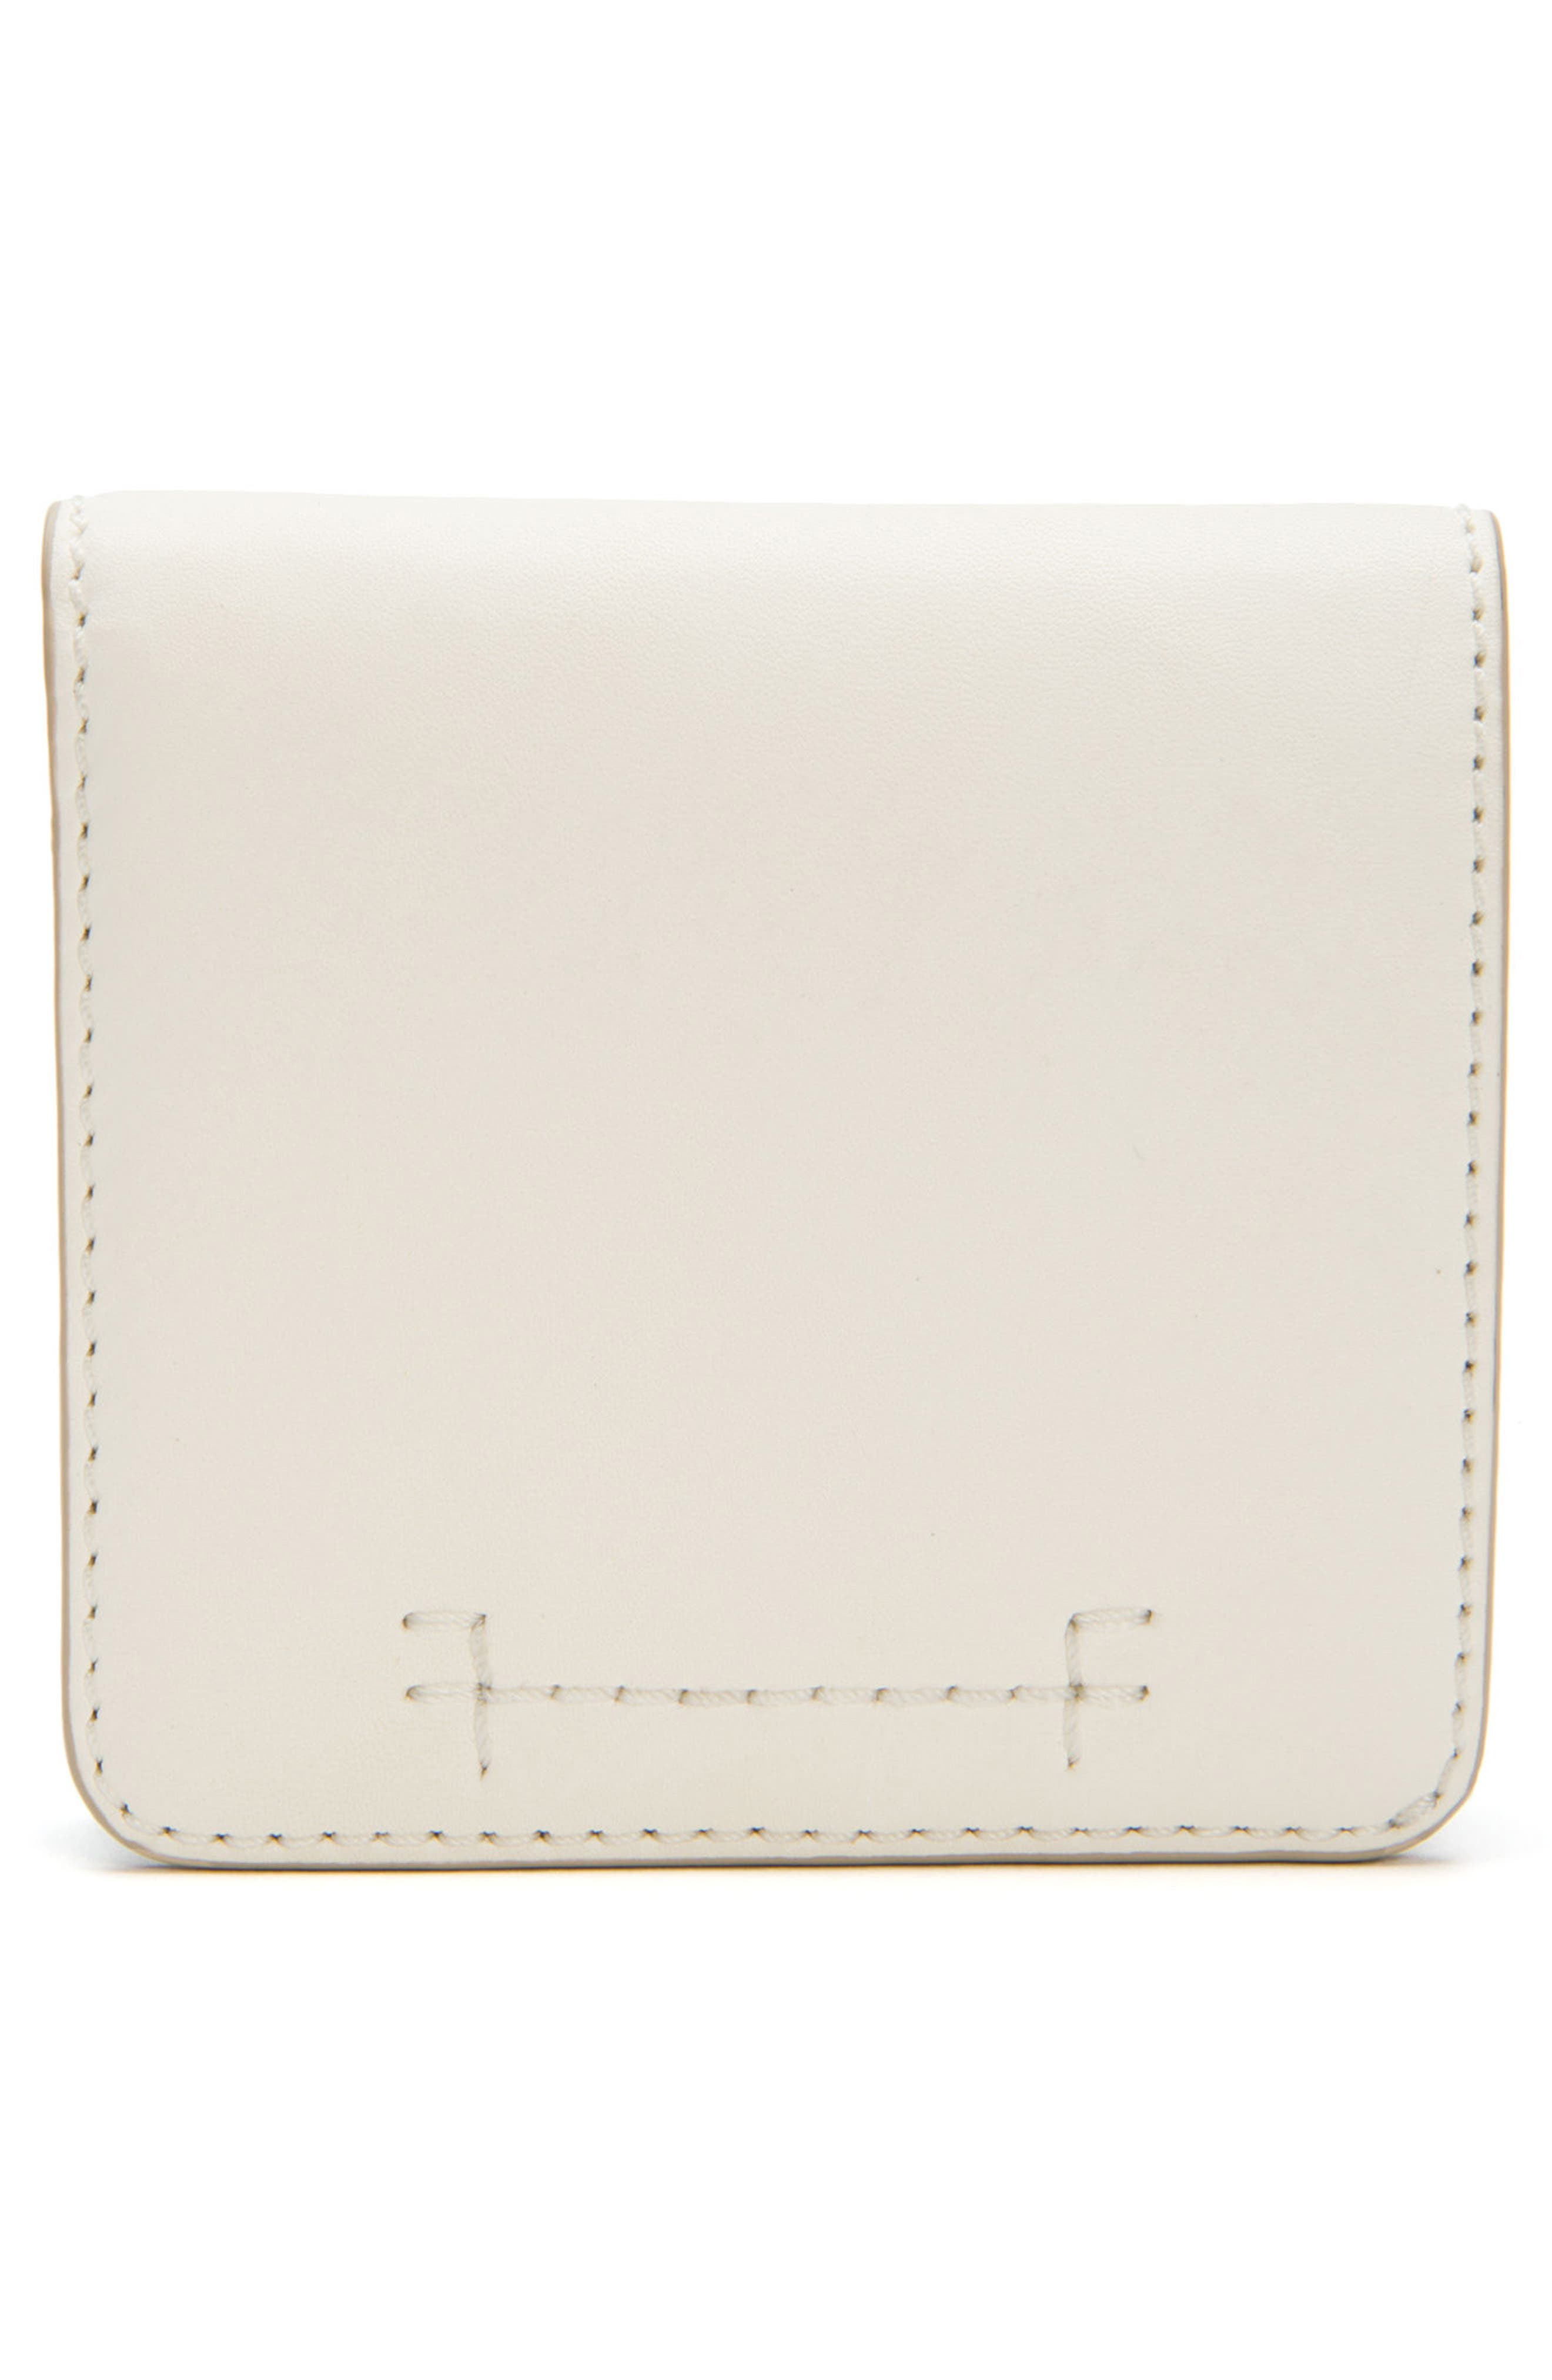 Carson Small Leather Wallet,                         Main,                         color, White